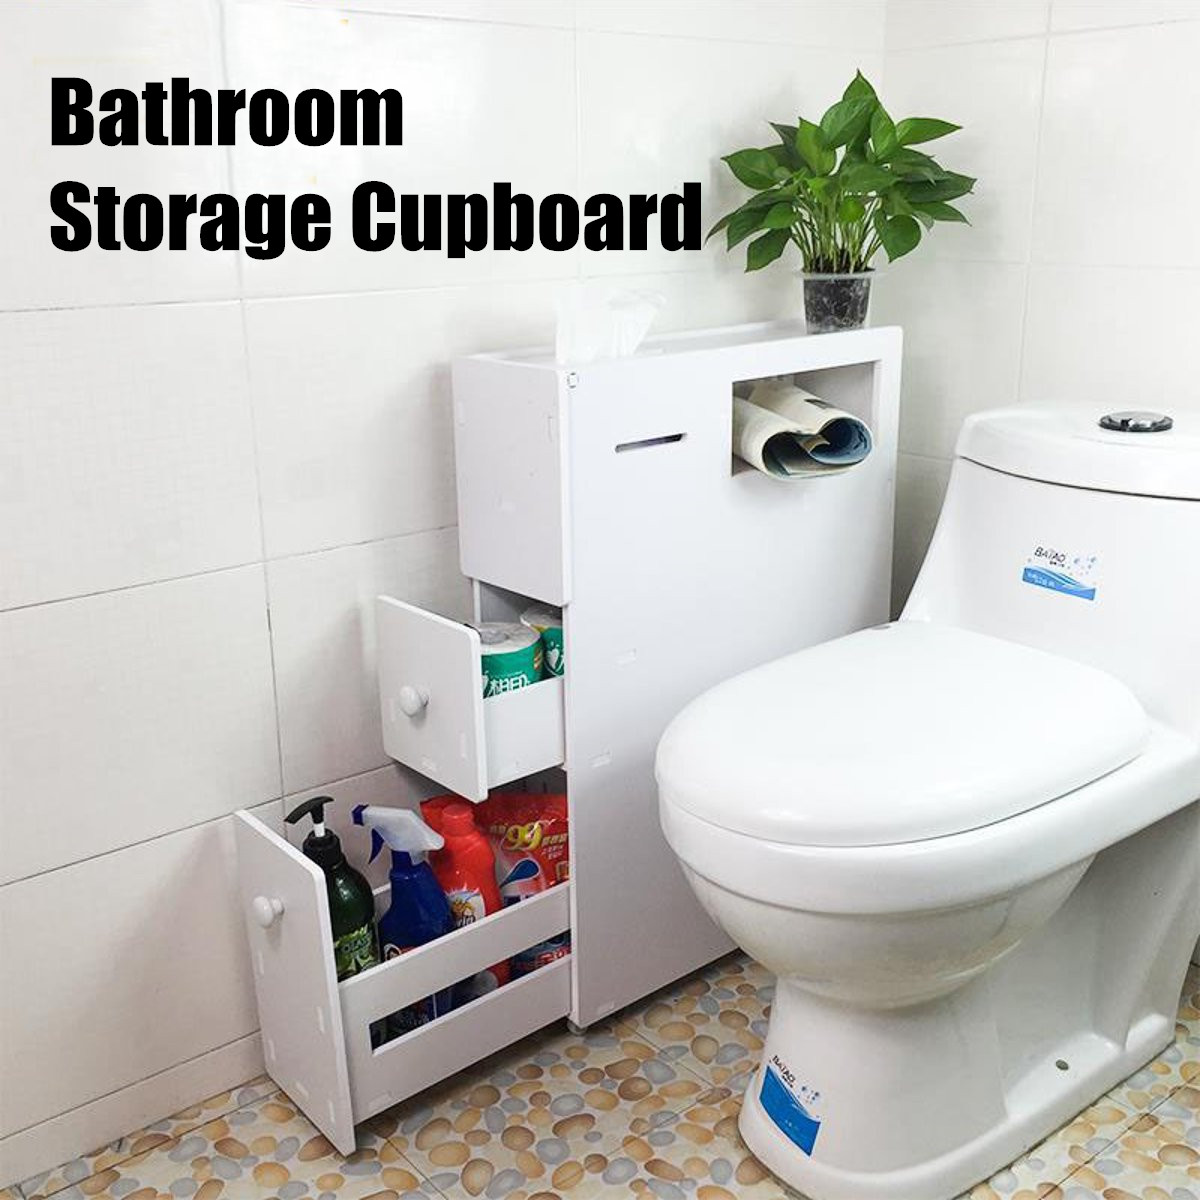 PVC Wood Bathroom Cabinet With Braked Wheels Home Furniture Waterproof Toilet Storage Cabinets Organizer Cupboard White